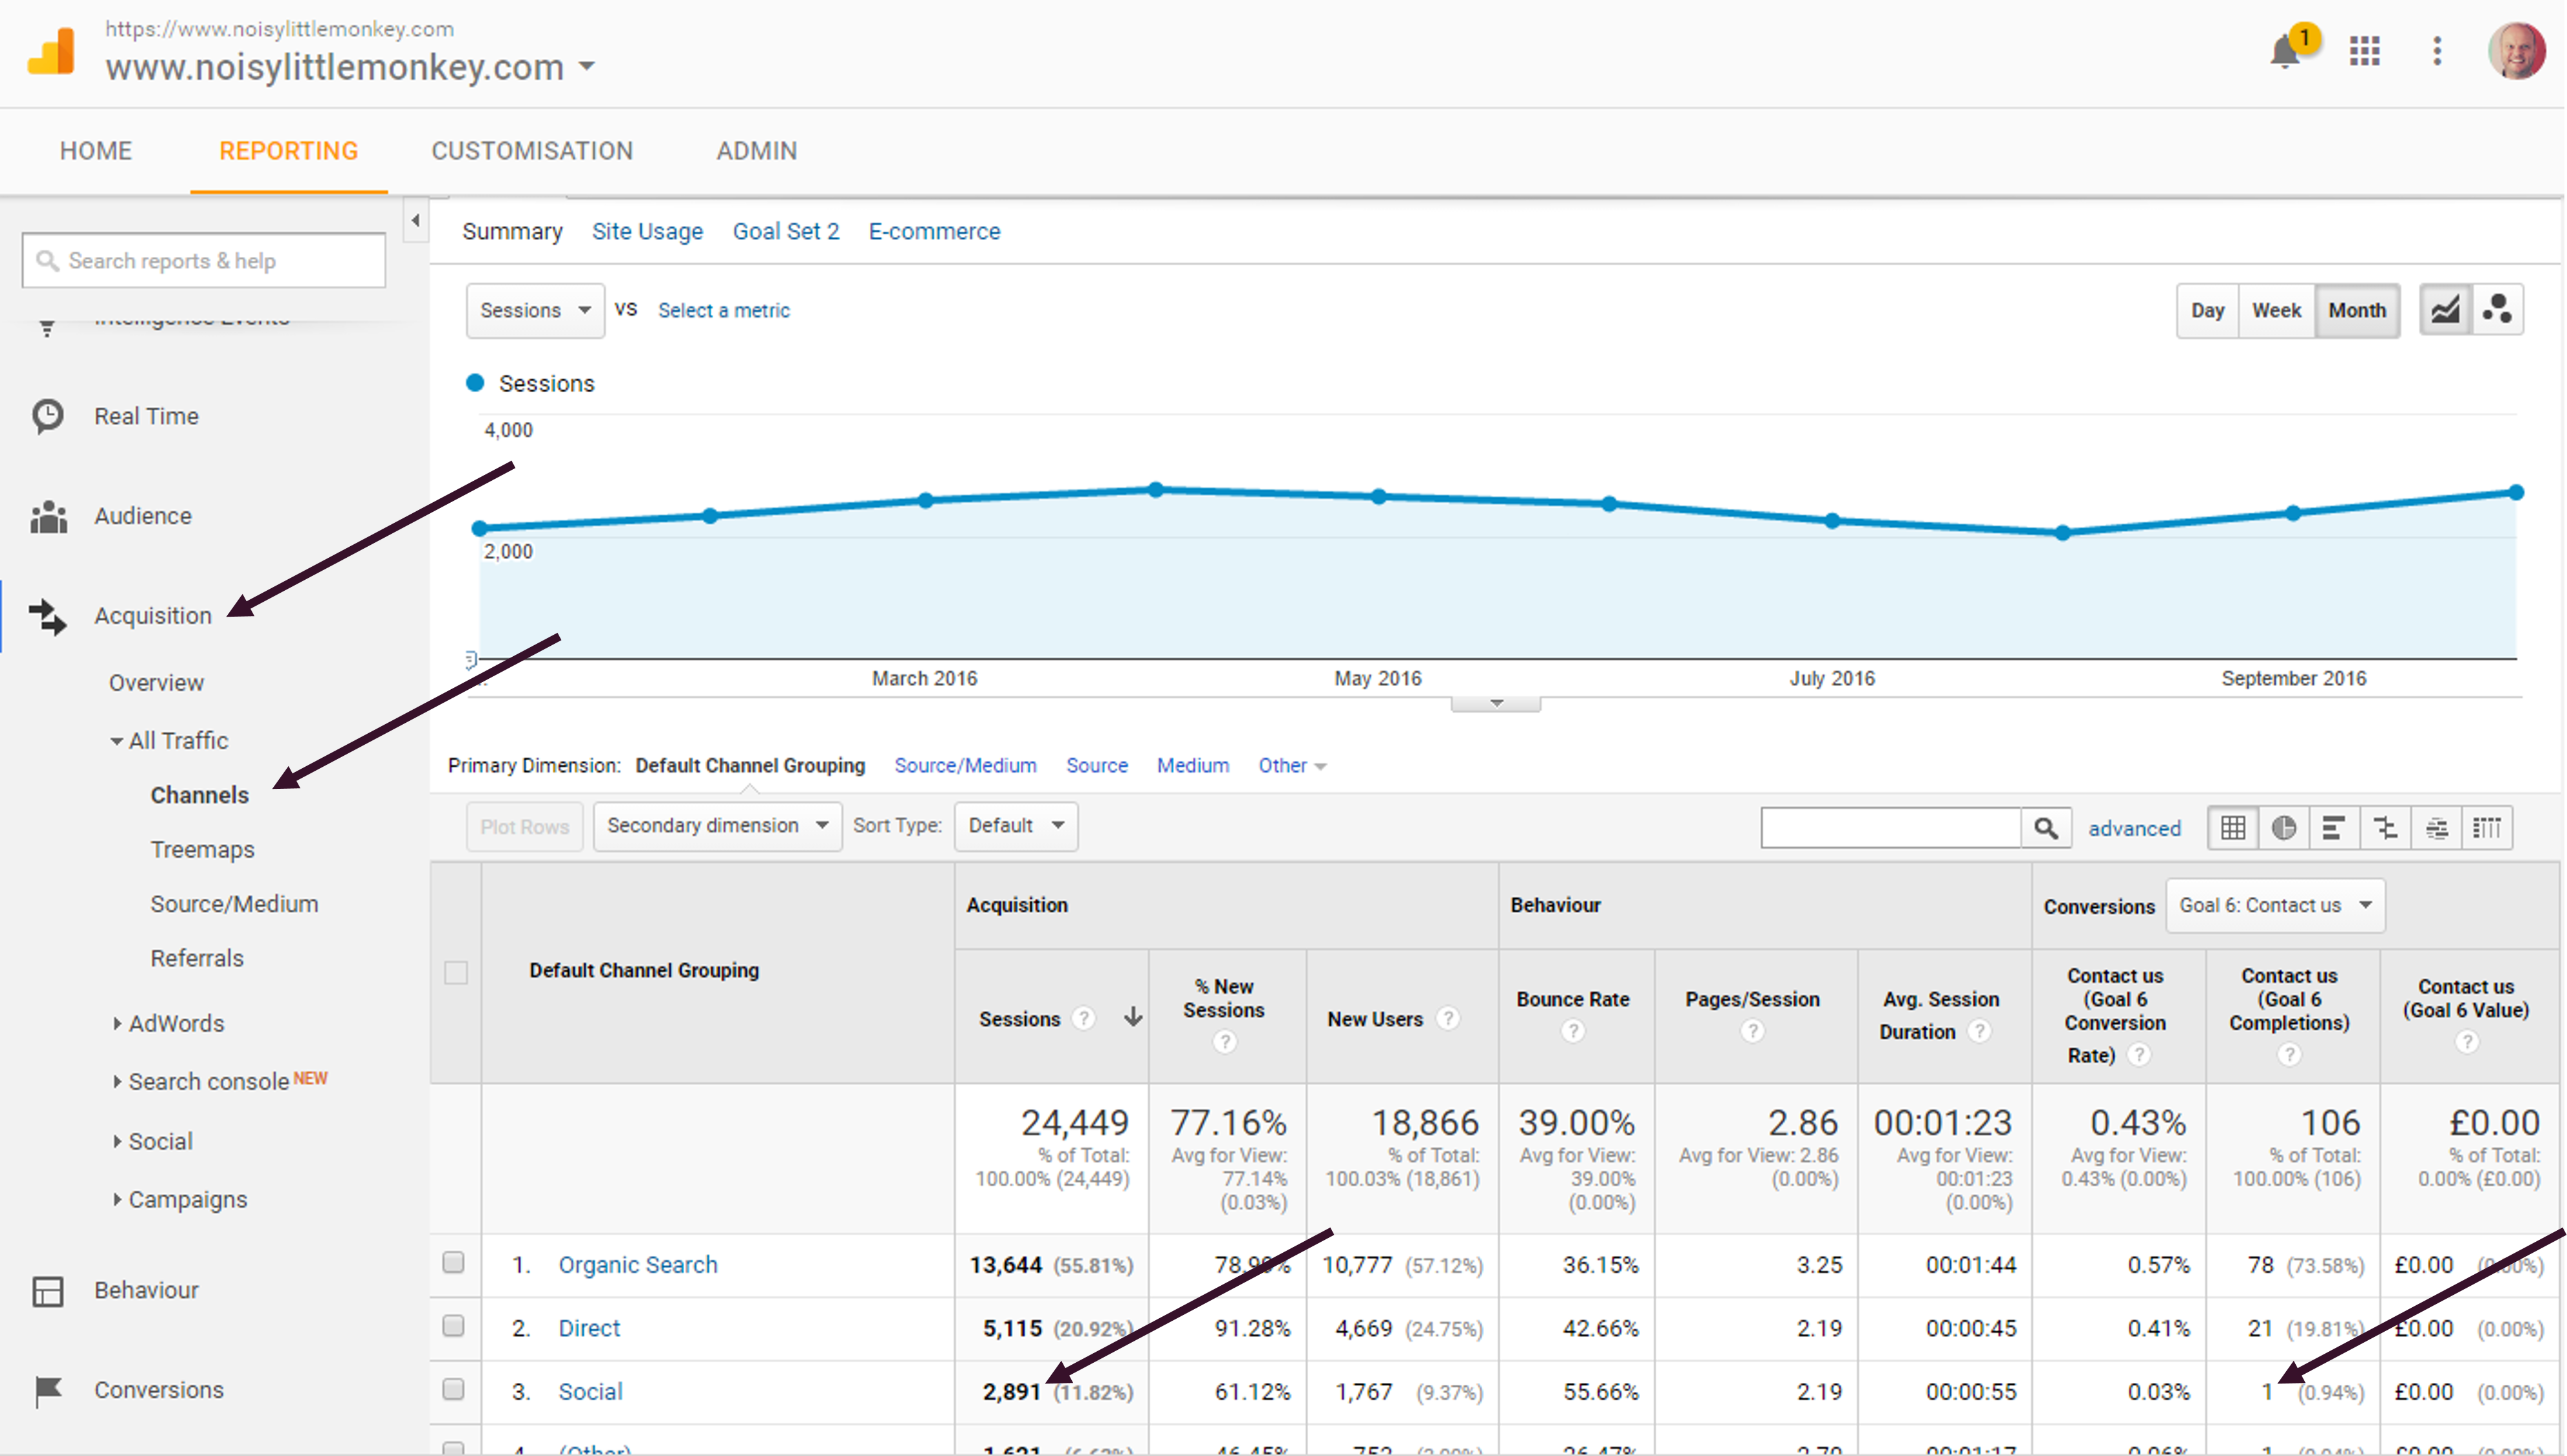 Google Analytics Goals driven by social channels